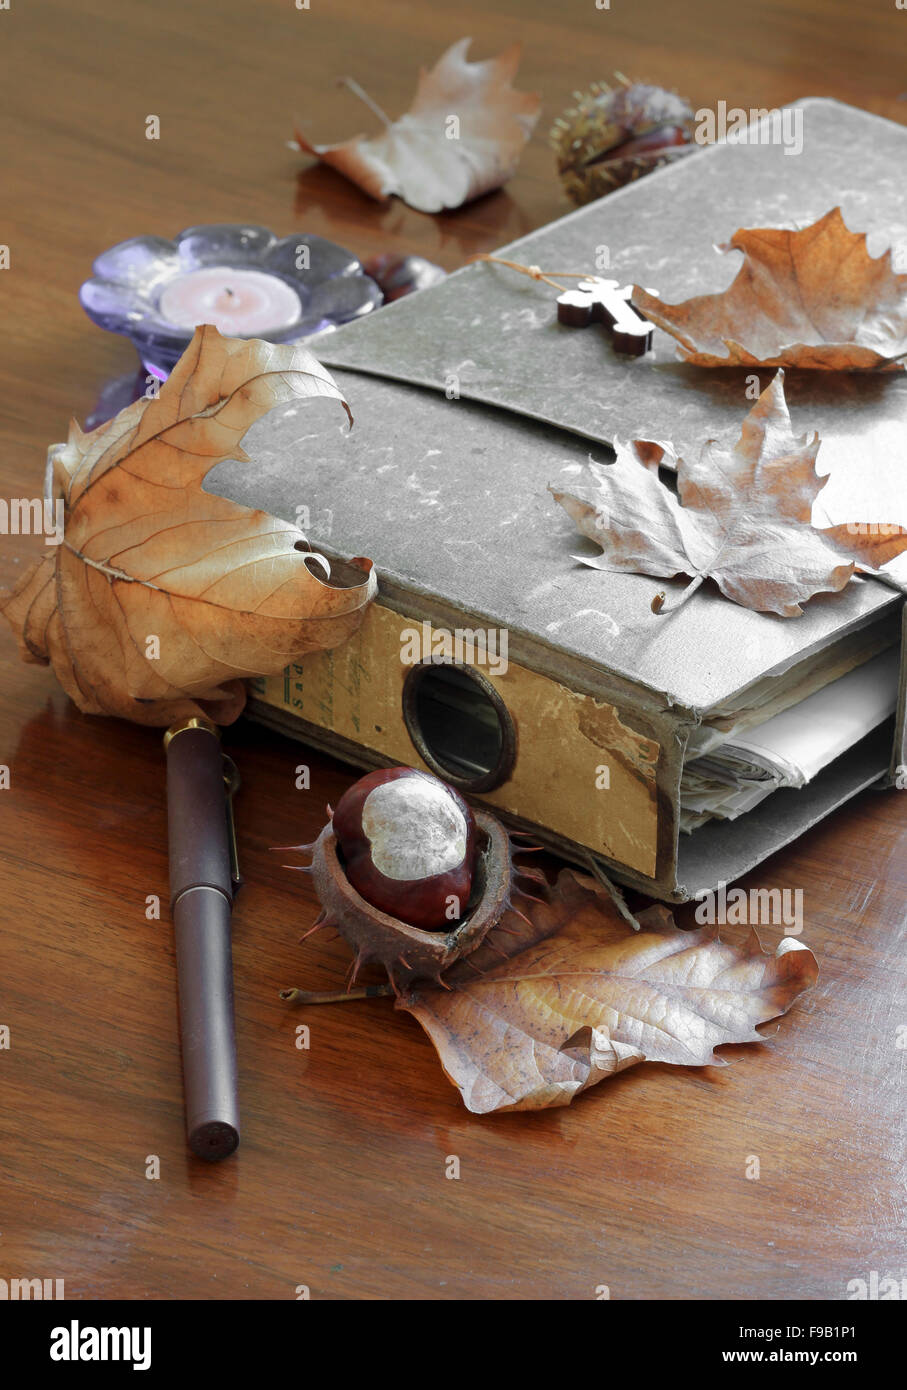 Folder with old documents - Stock Image